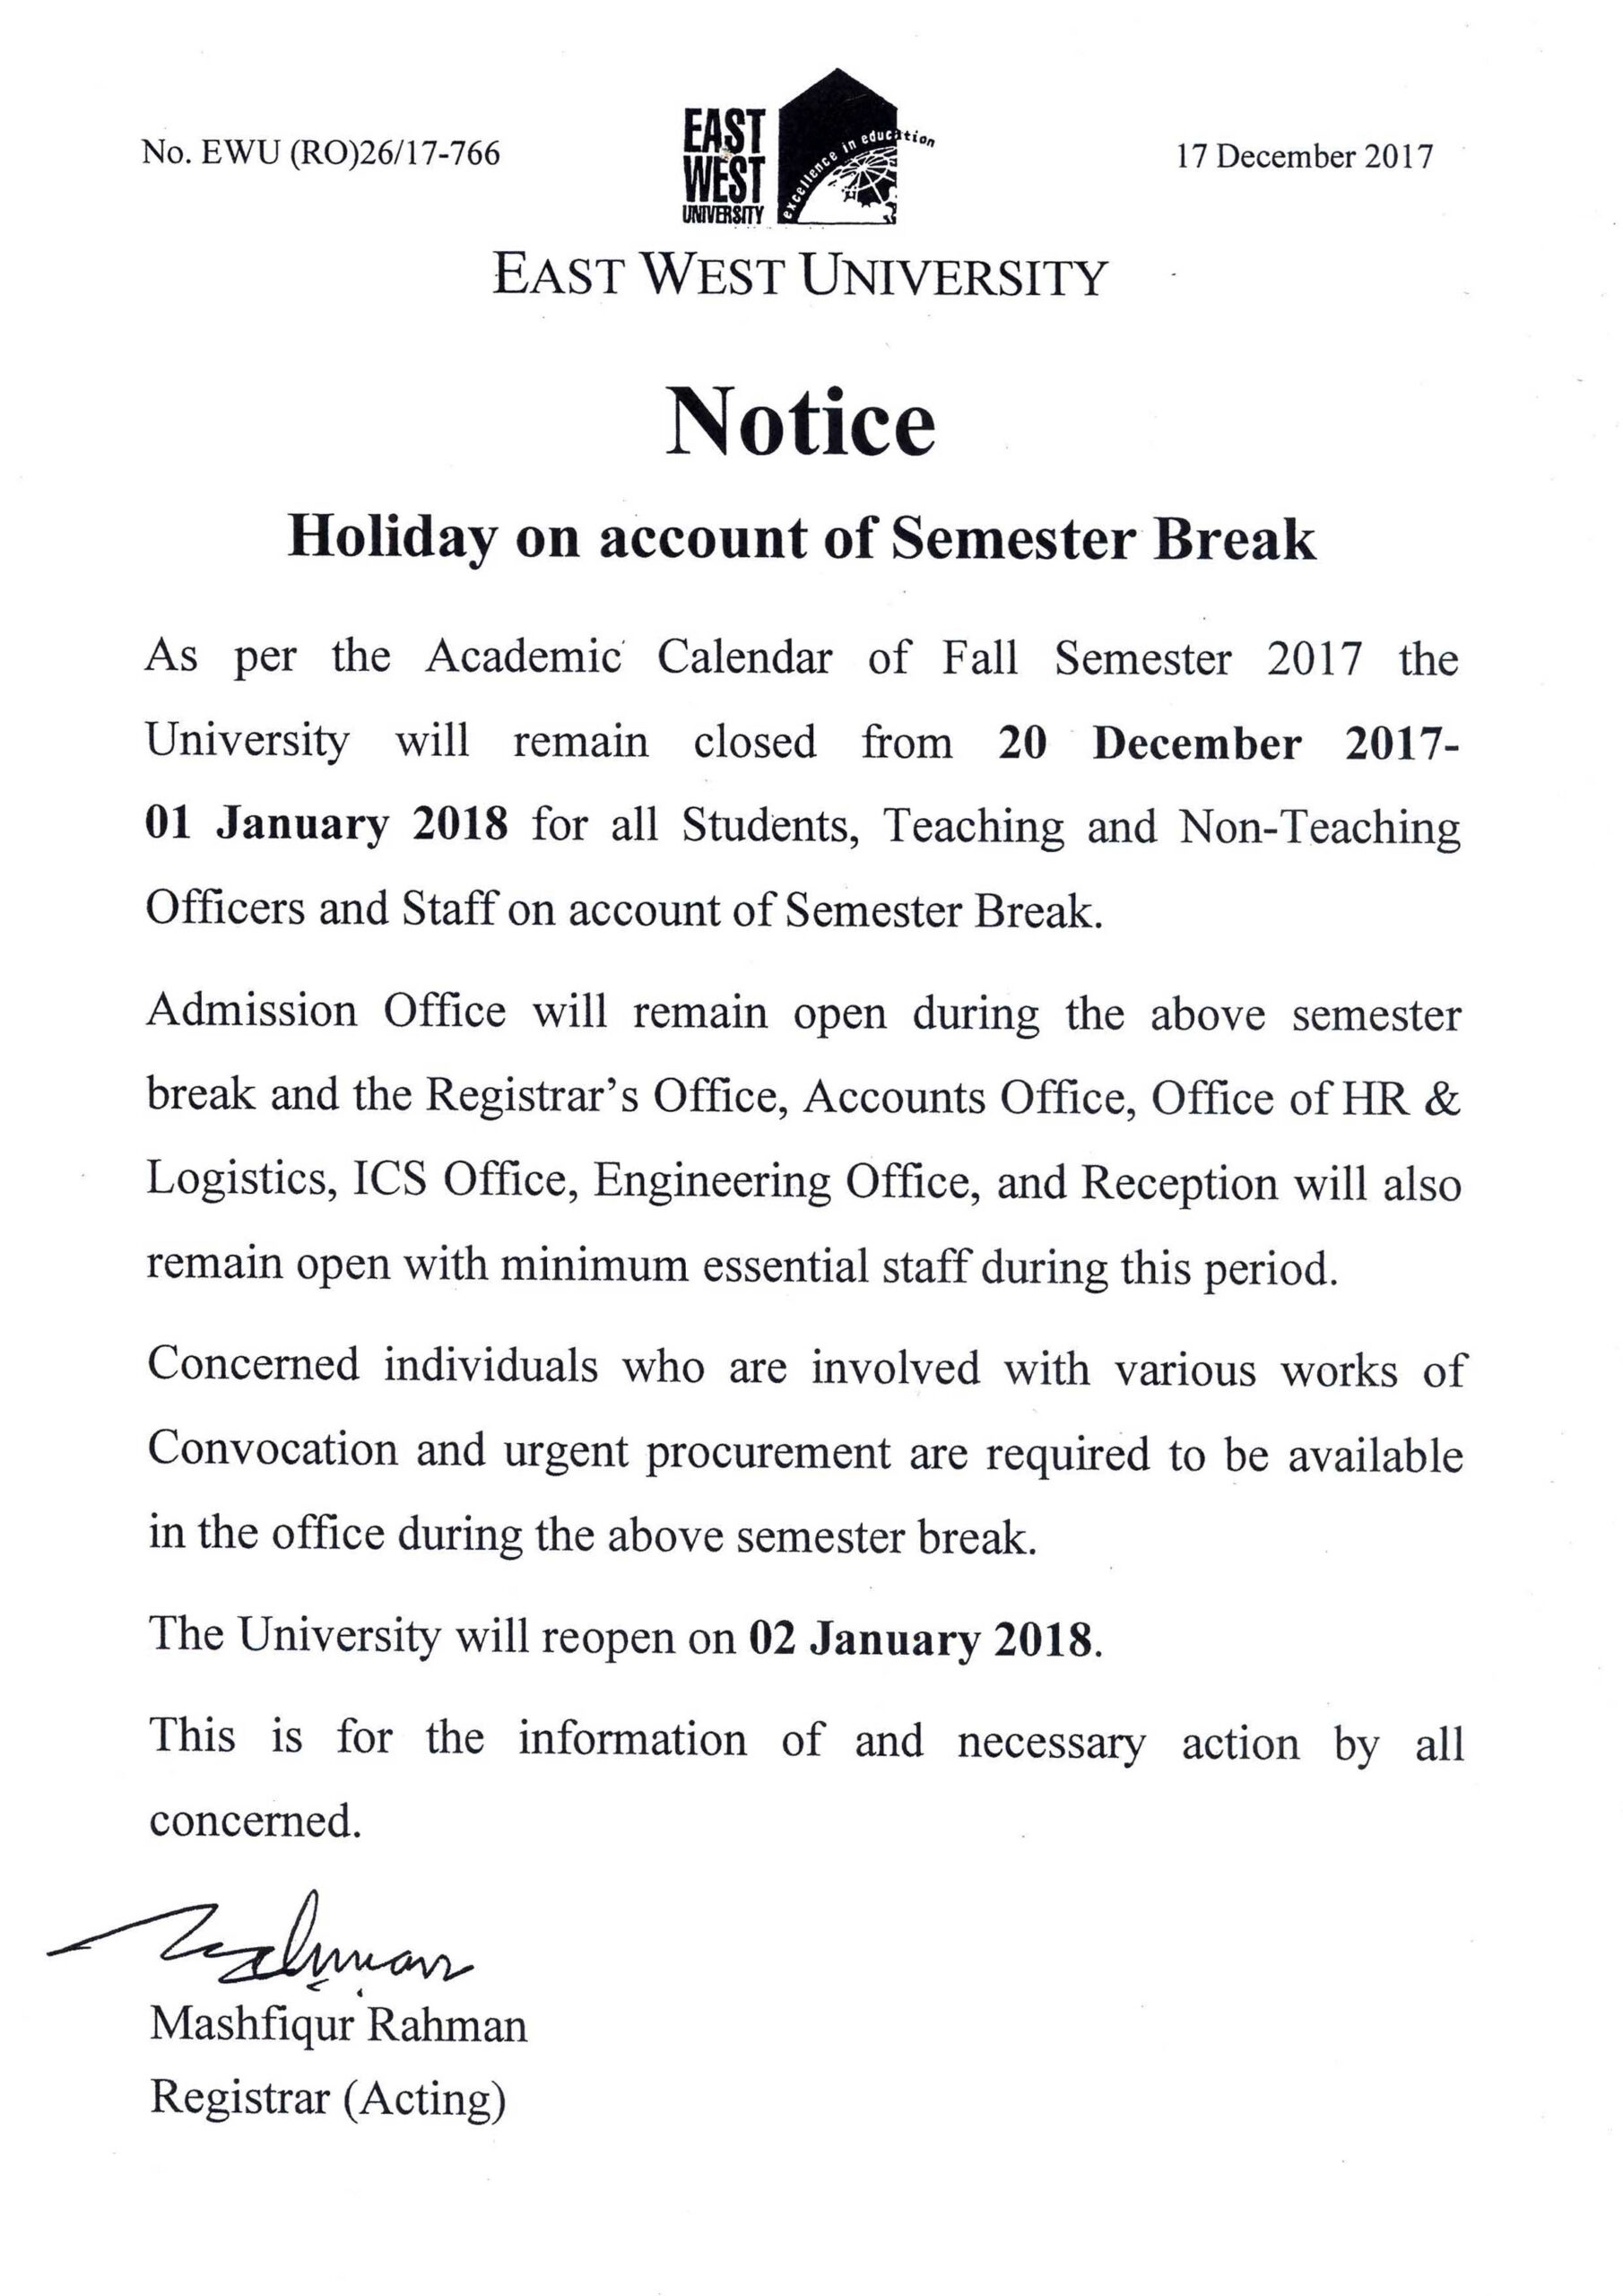 Holiday on account of Semester Break   East West University